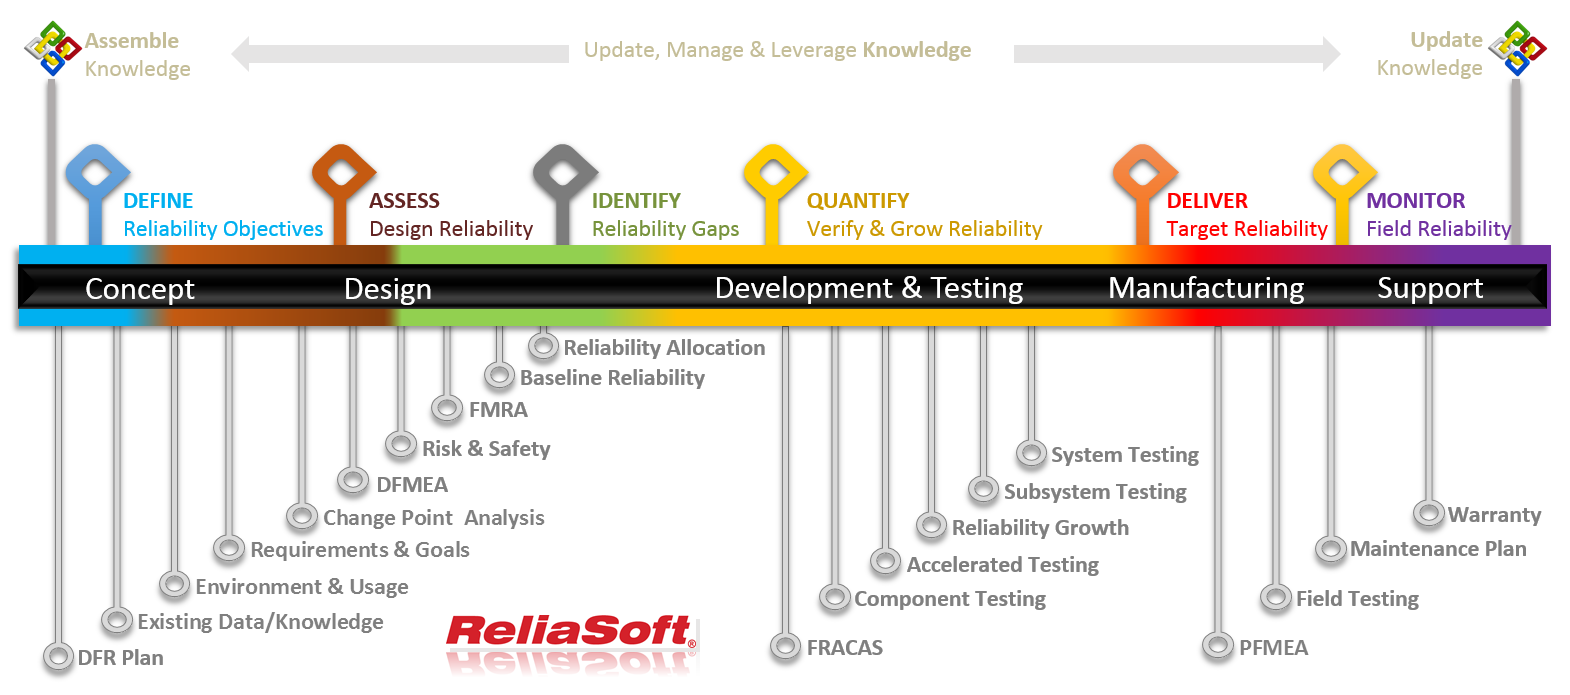 Design for Reliability (DFR) Roadmap (Courtesy: ReliaSoft)